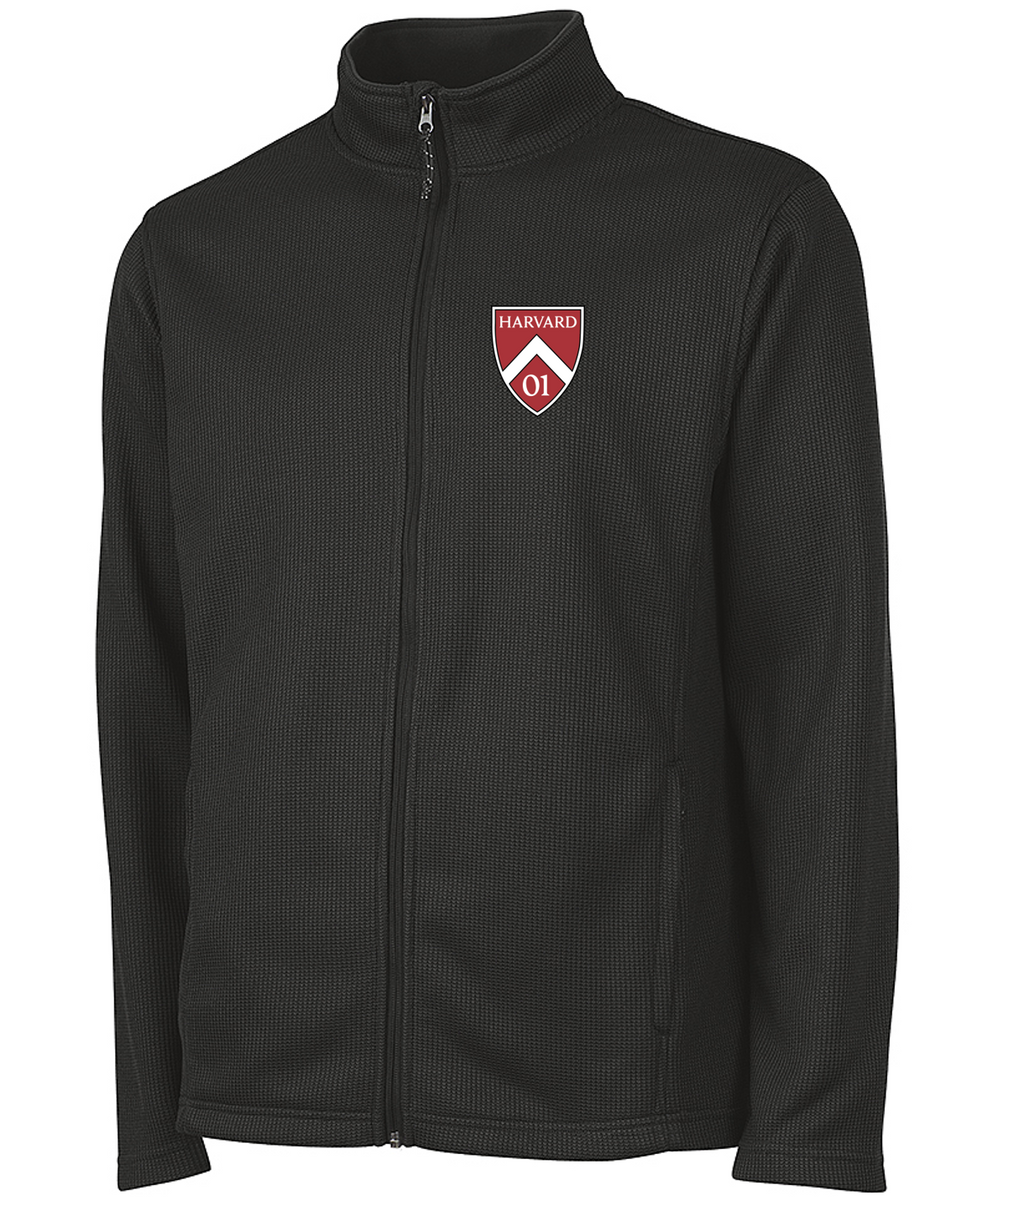 Harvard Class of 2001 20th Reunion Men's Rib Knit Jacket